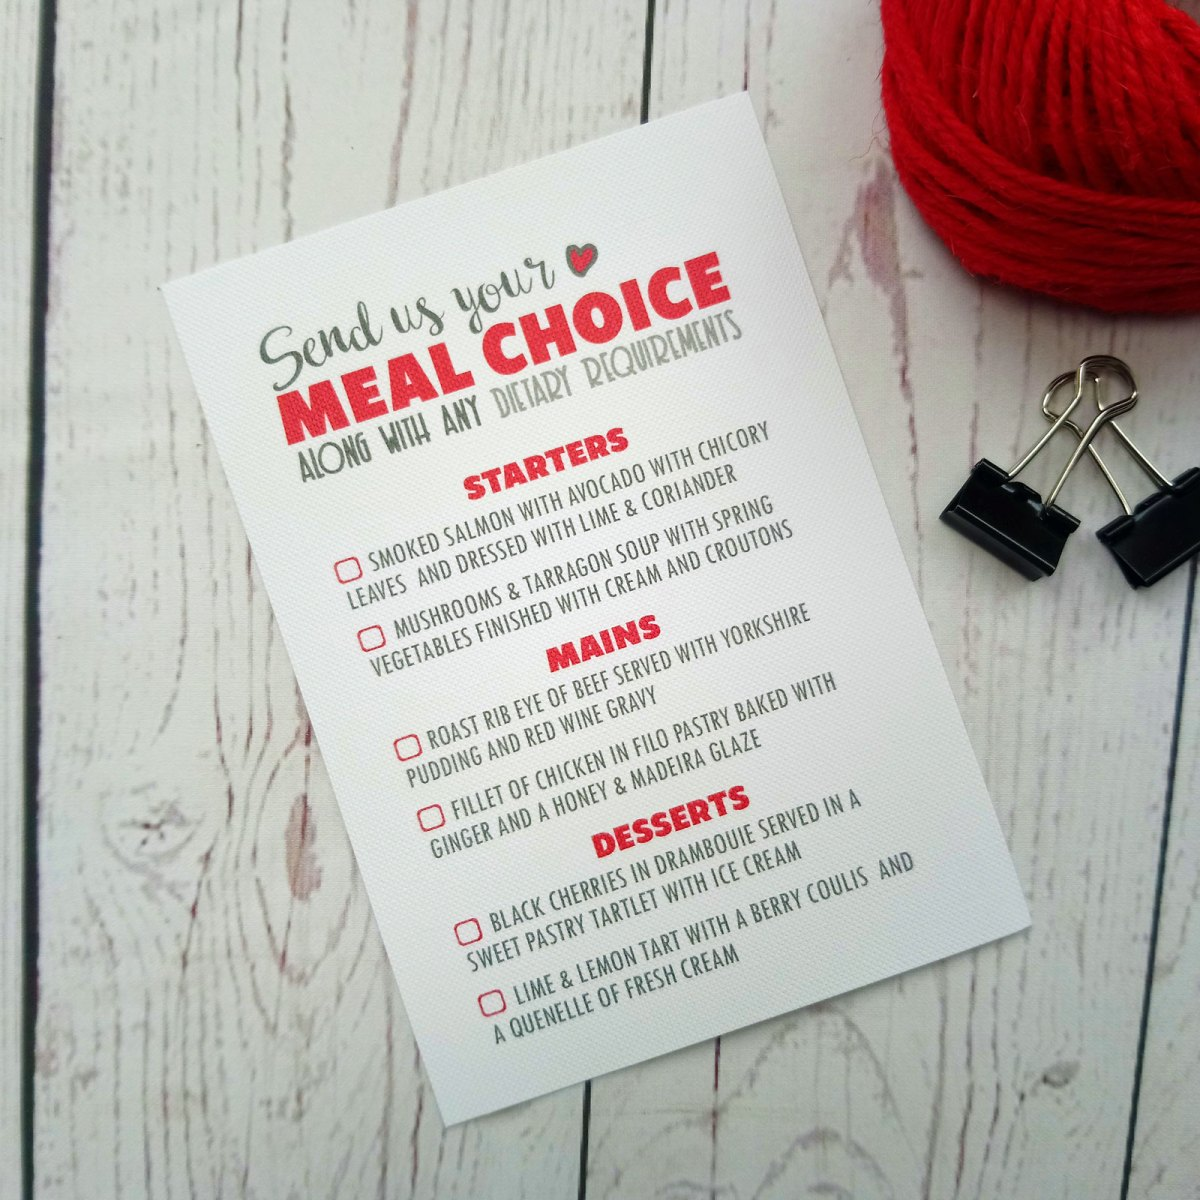 Meal Choice with tick boxes Lovers Bike Love heart Wedding Menu Card